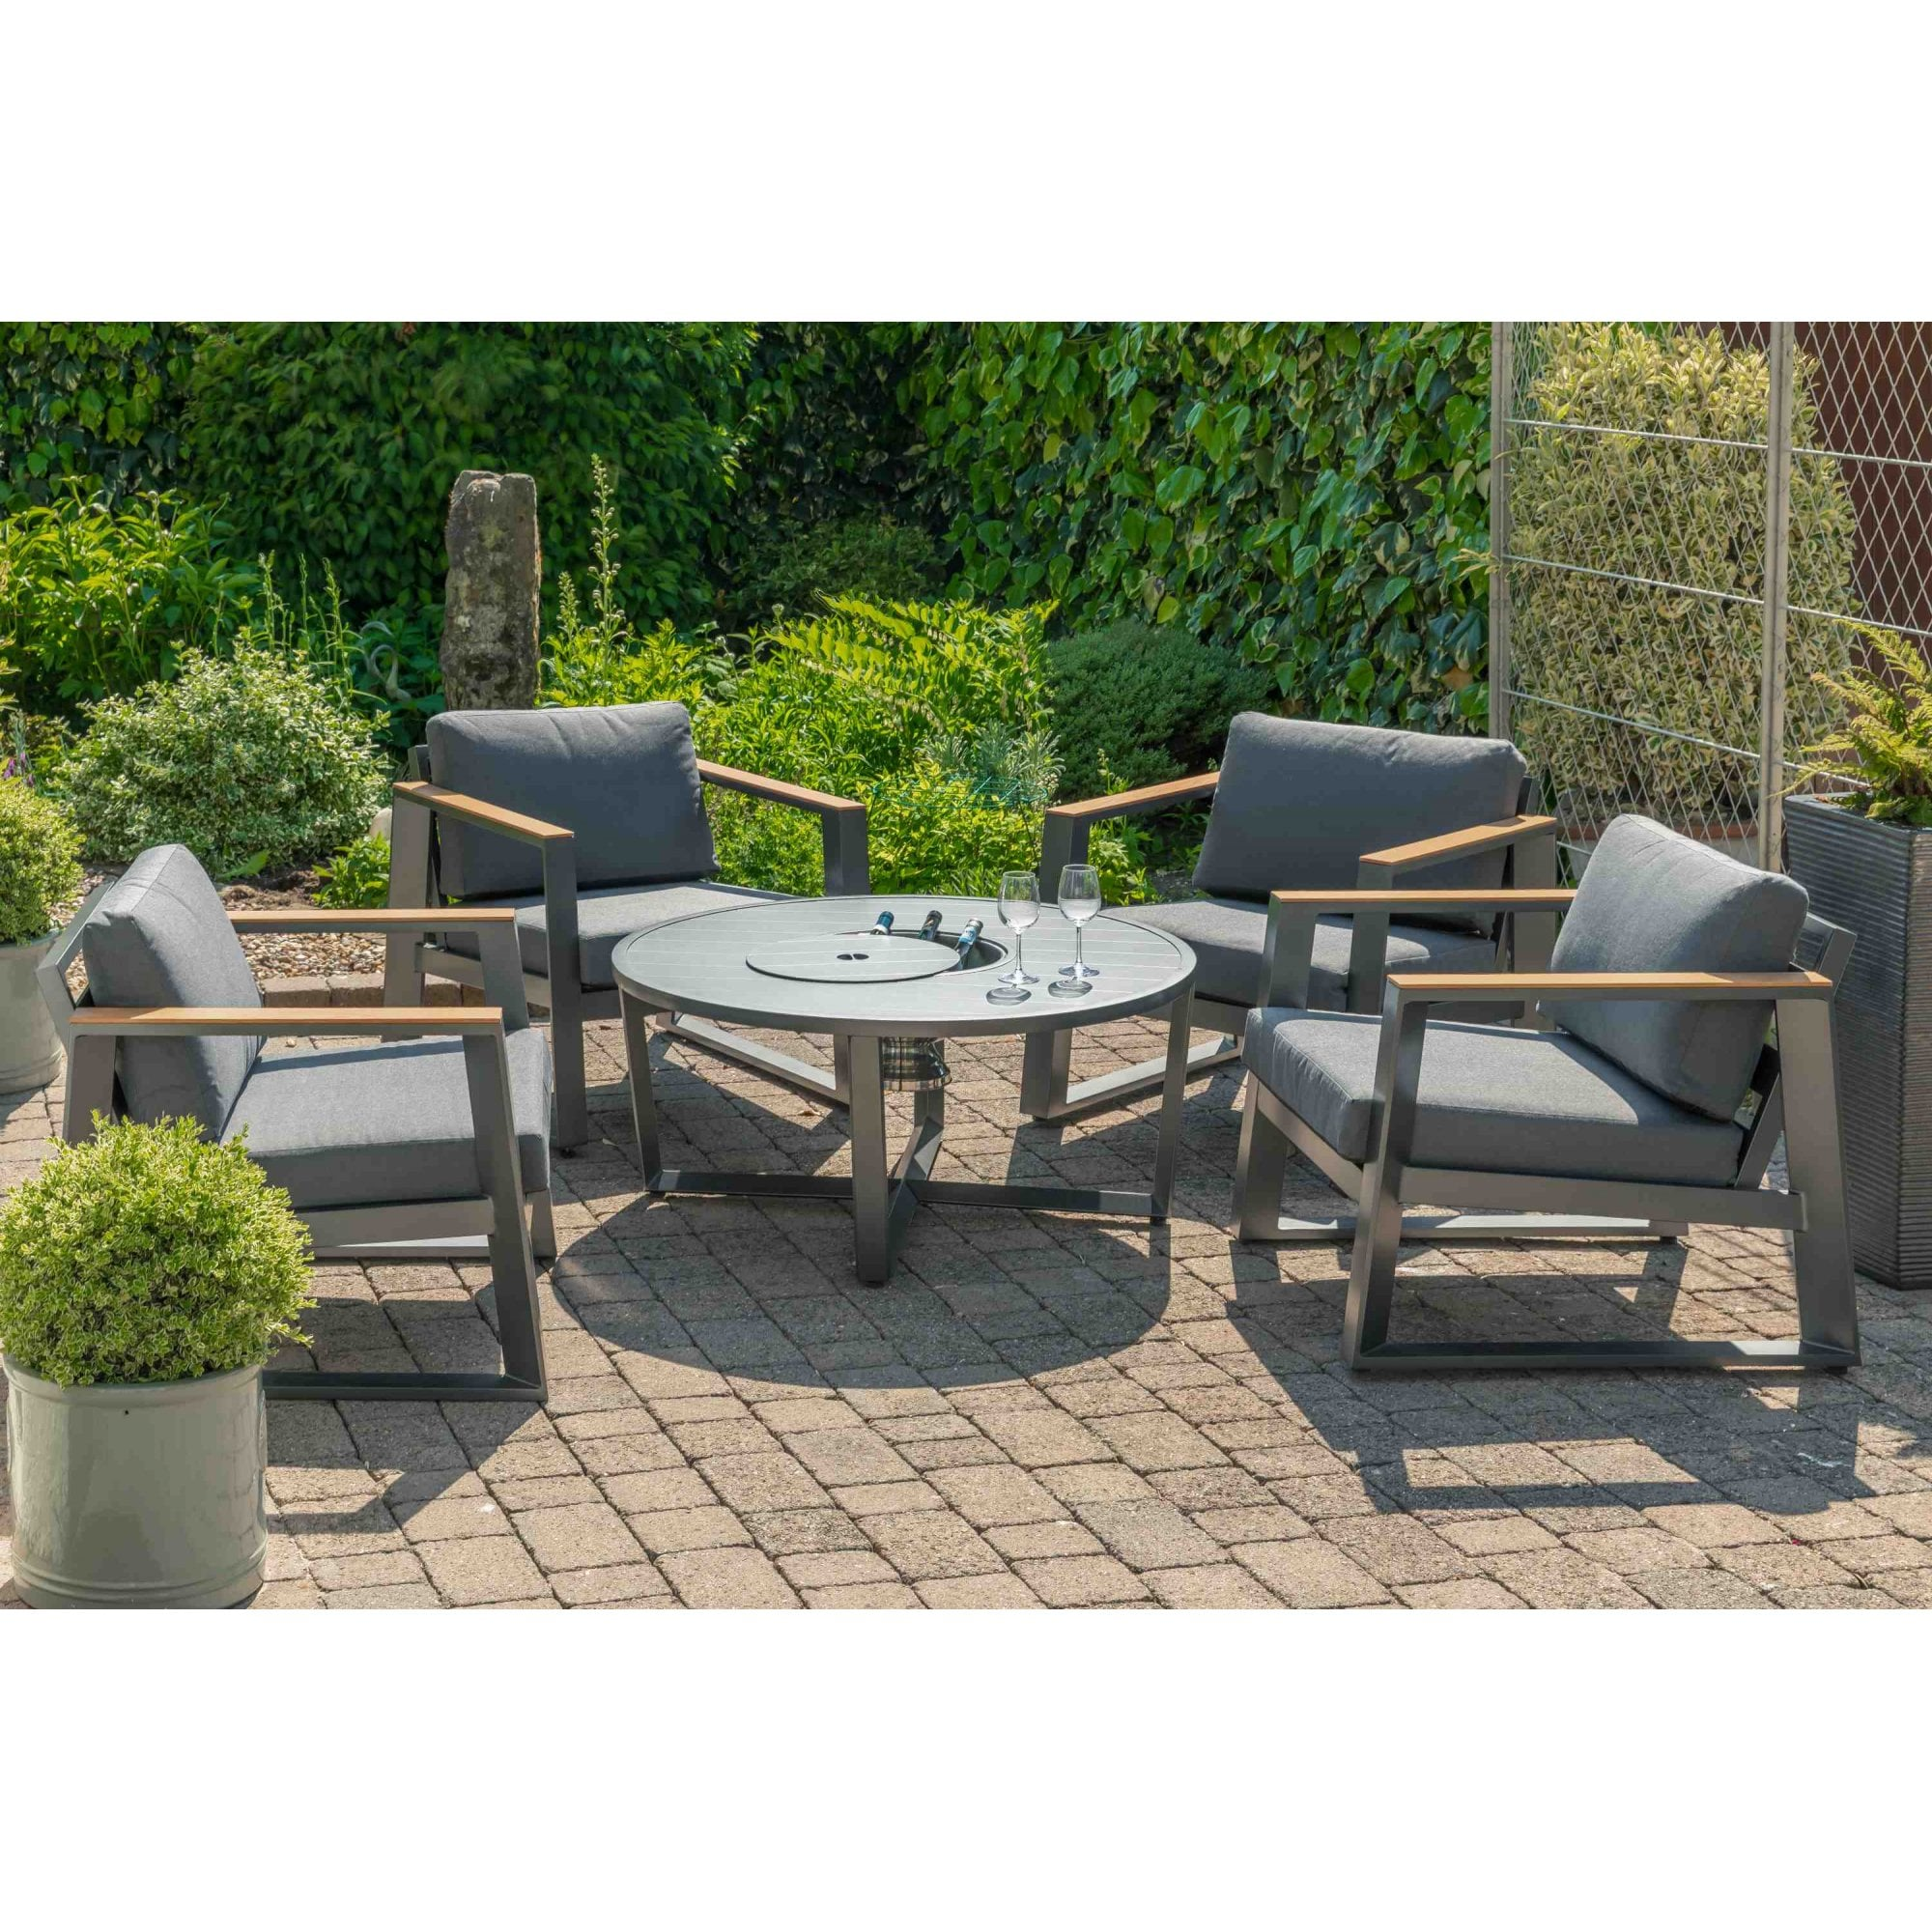 Lg Outdoor Roma Ice Bucket Lounge Set Garden Street